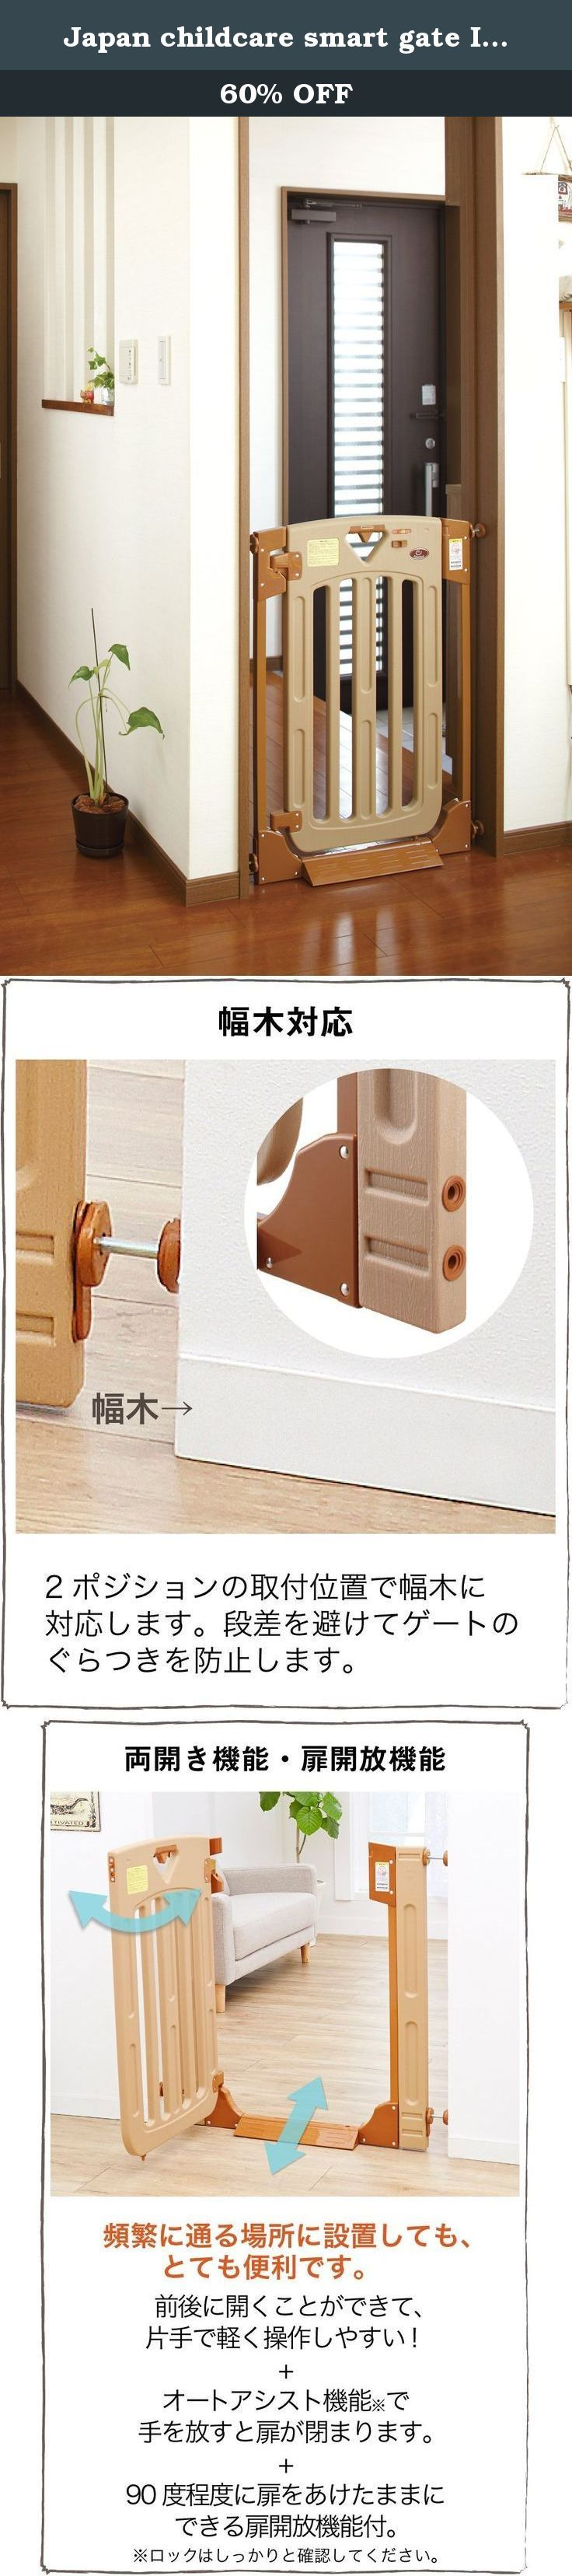 Japan childcare smart gate II Smart Gate 2 mounting width 67 ~ 91cm ~ depth 3 ~ height 91cm 5014045001 6 months to 24 months subject door retractable bracing gate. Brace system blow gate of skirting correspondence of the door opening and closing double lock Mounting width 67 ~ 91cm ~ depth 3 ~ height 91cm Age: 6 months to two years old Double lock [Body size] [body] about W61.5 ~ D3 ~ H91cm [extended frame] about W8 ~ D3 ~ H87cm Weight: [body] about 5kg [extended frame] about 0.5kg…